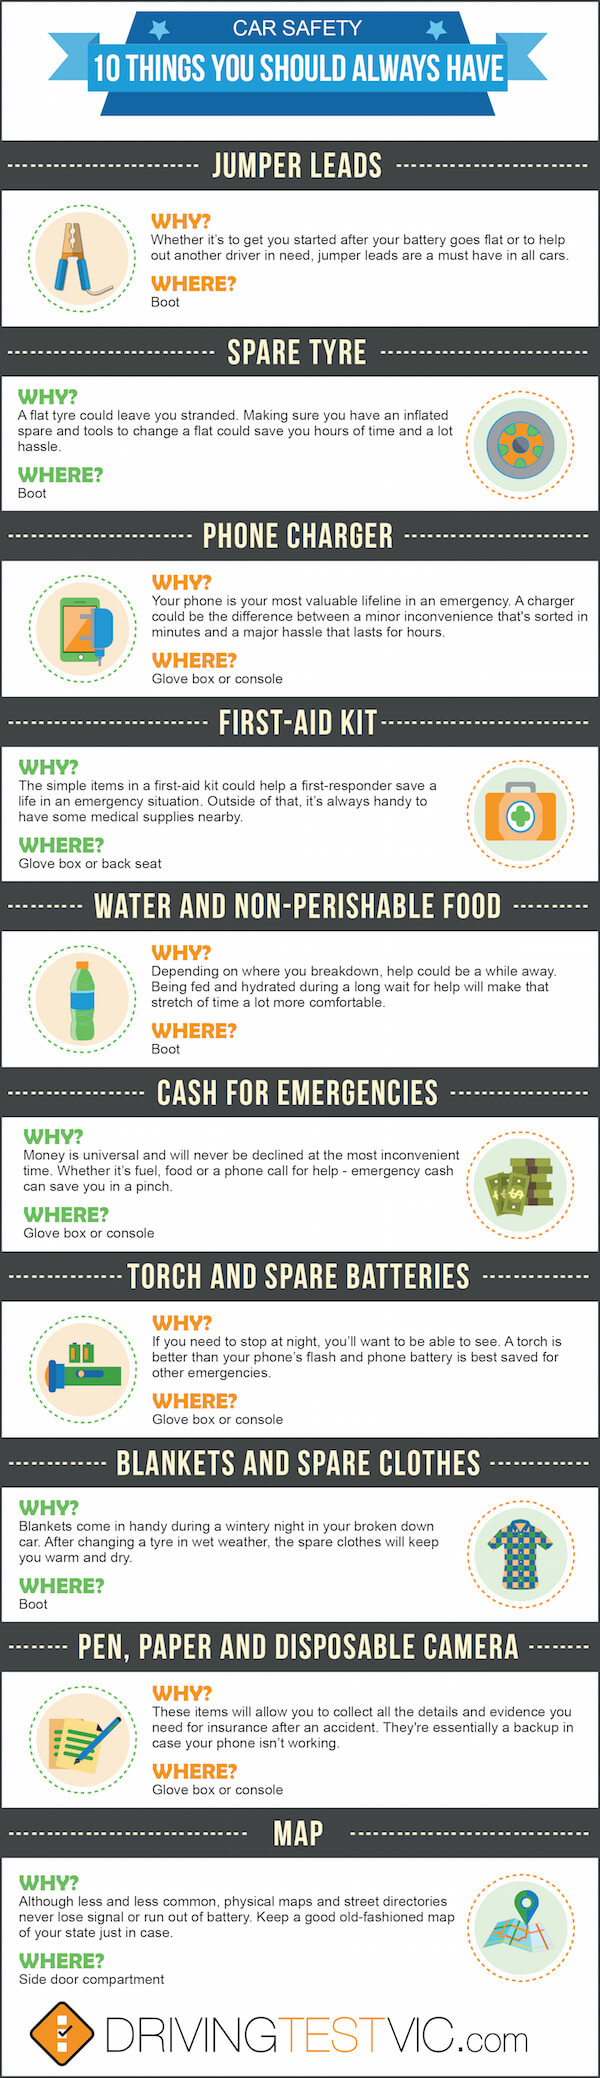 Car Safety - 10 Things You Should Always Have